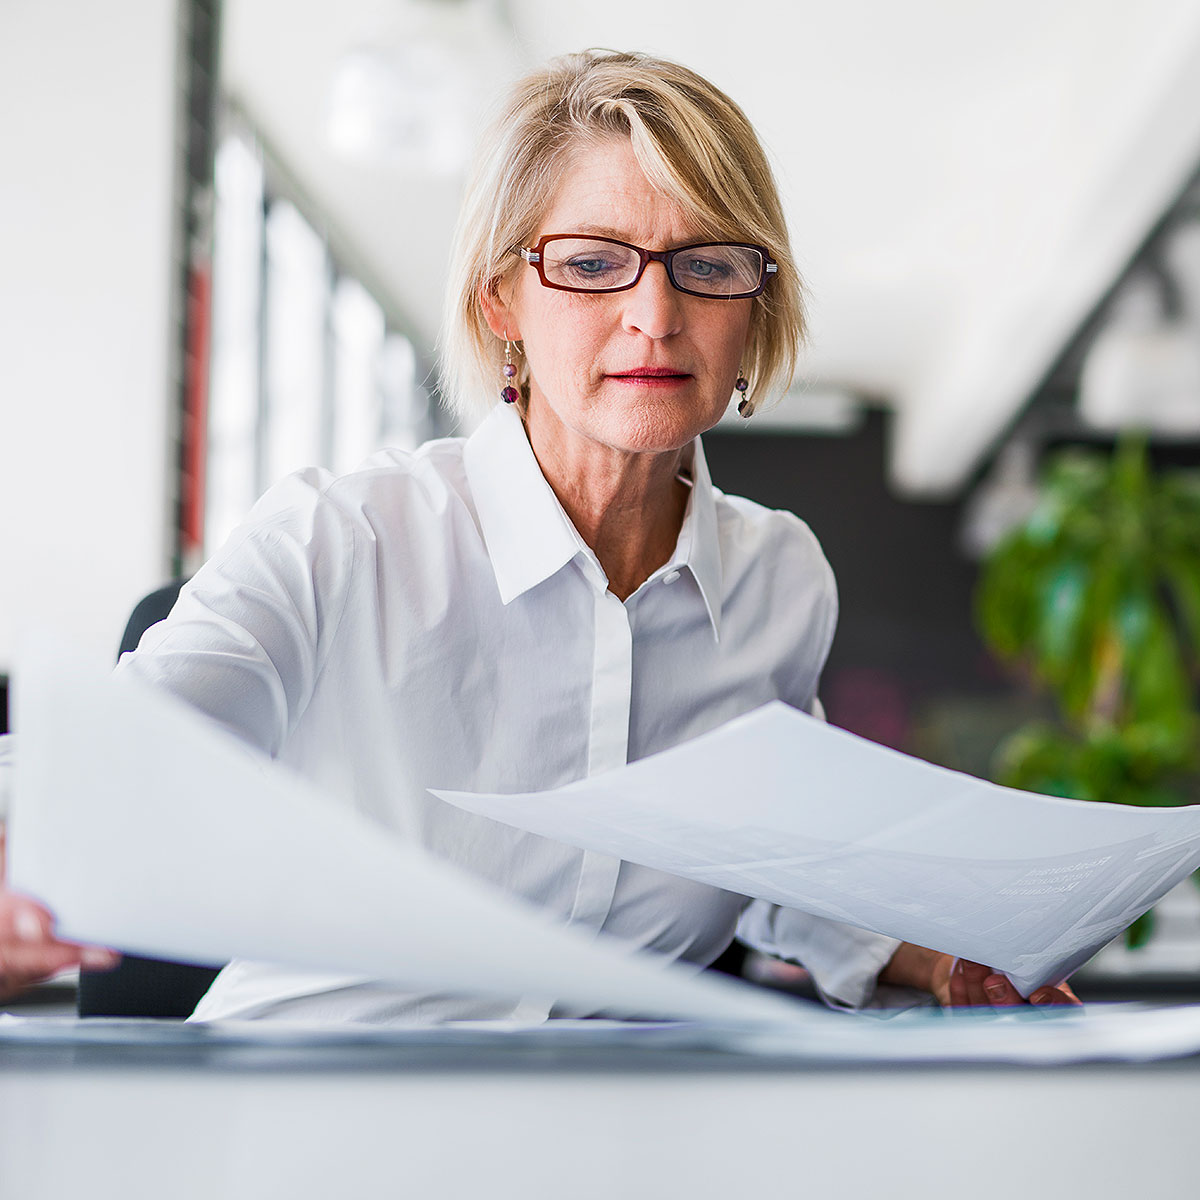 image of woman sifting through papers on desk